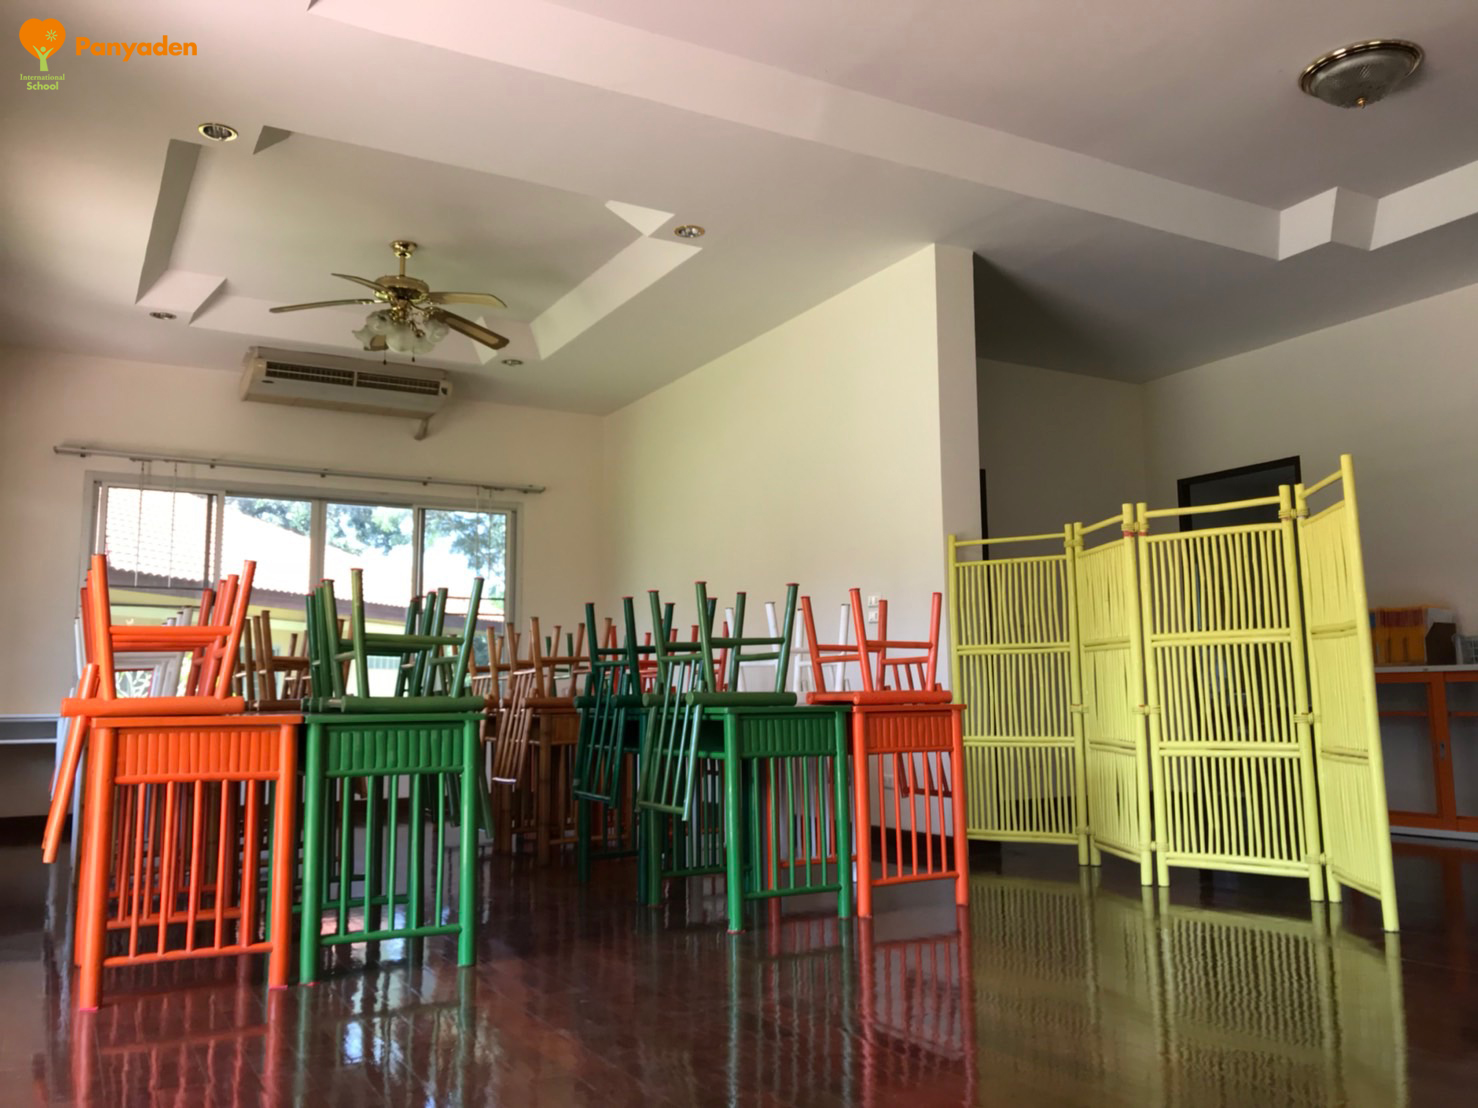 Tables and chairs ready for class again at Panyaden's temporary campus